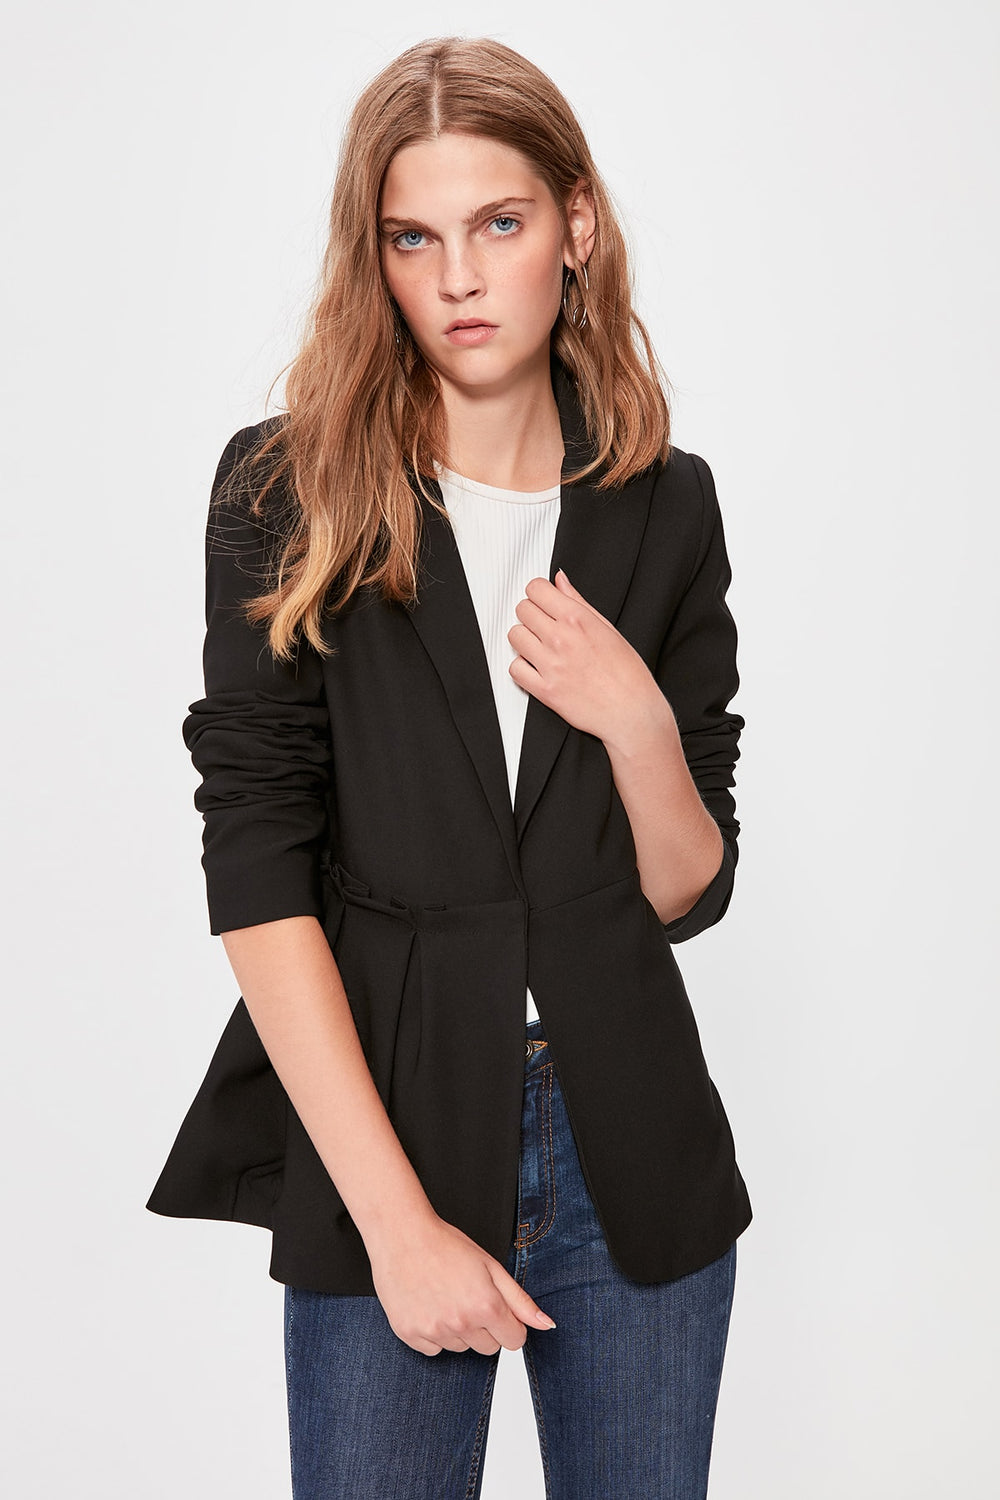 Miss Zut Miss Zut Black Jacket with Ruffle Detail Jacket Miss Zut &CO